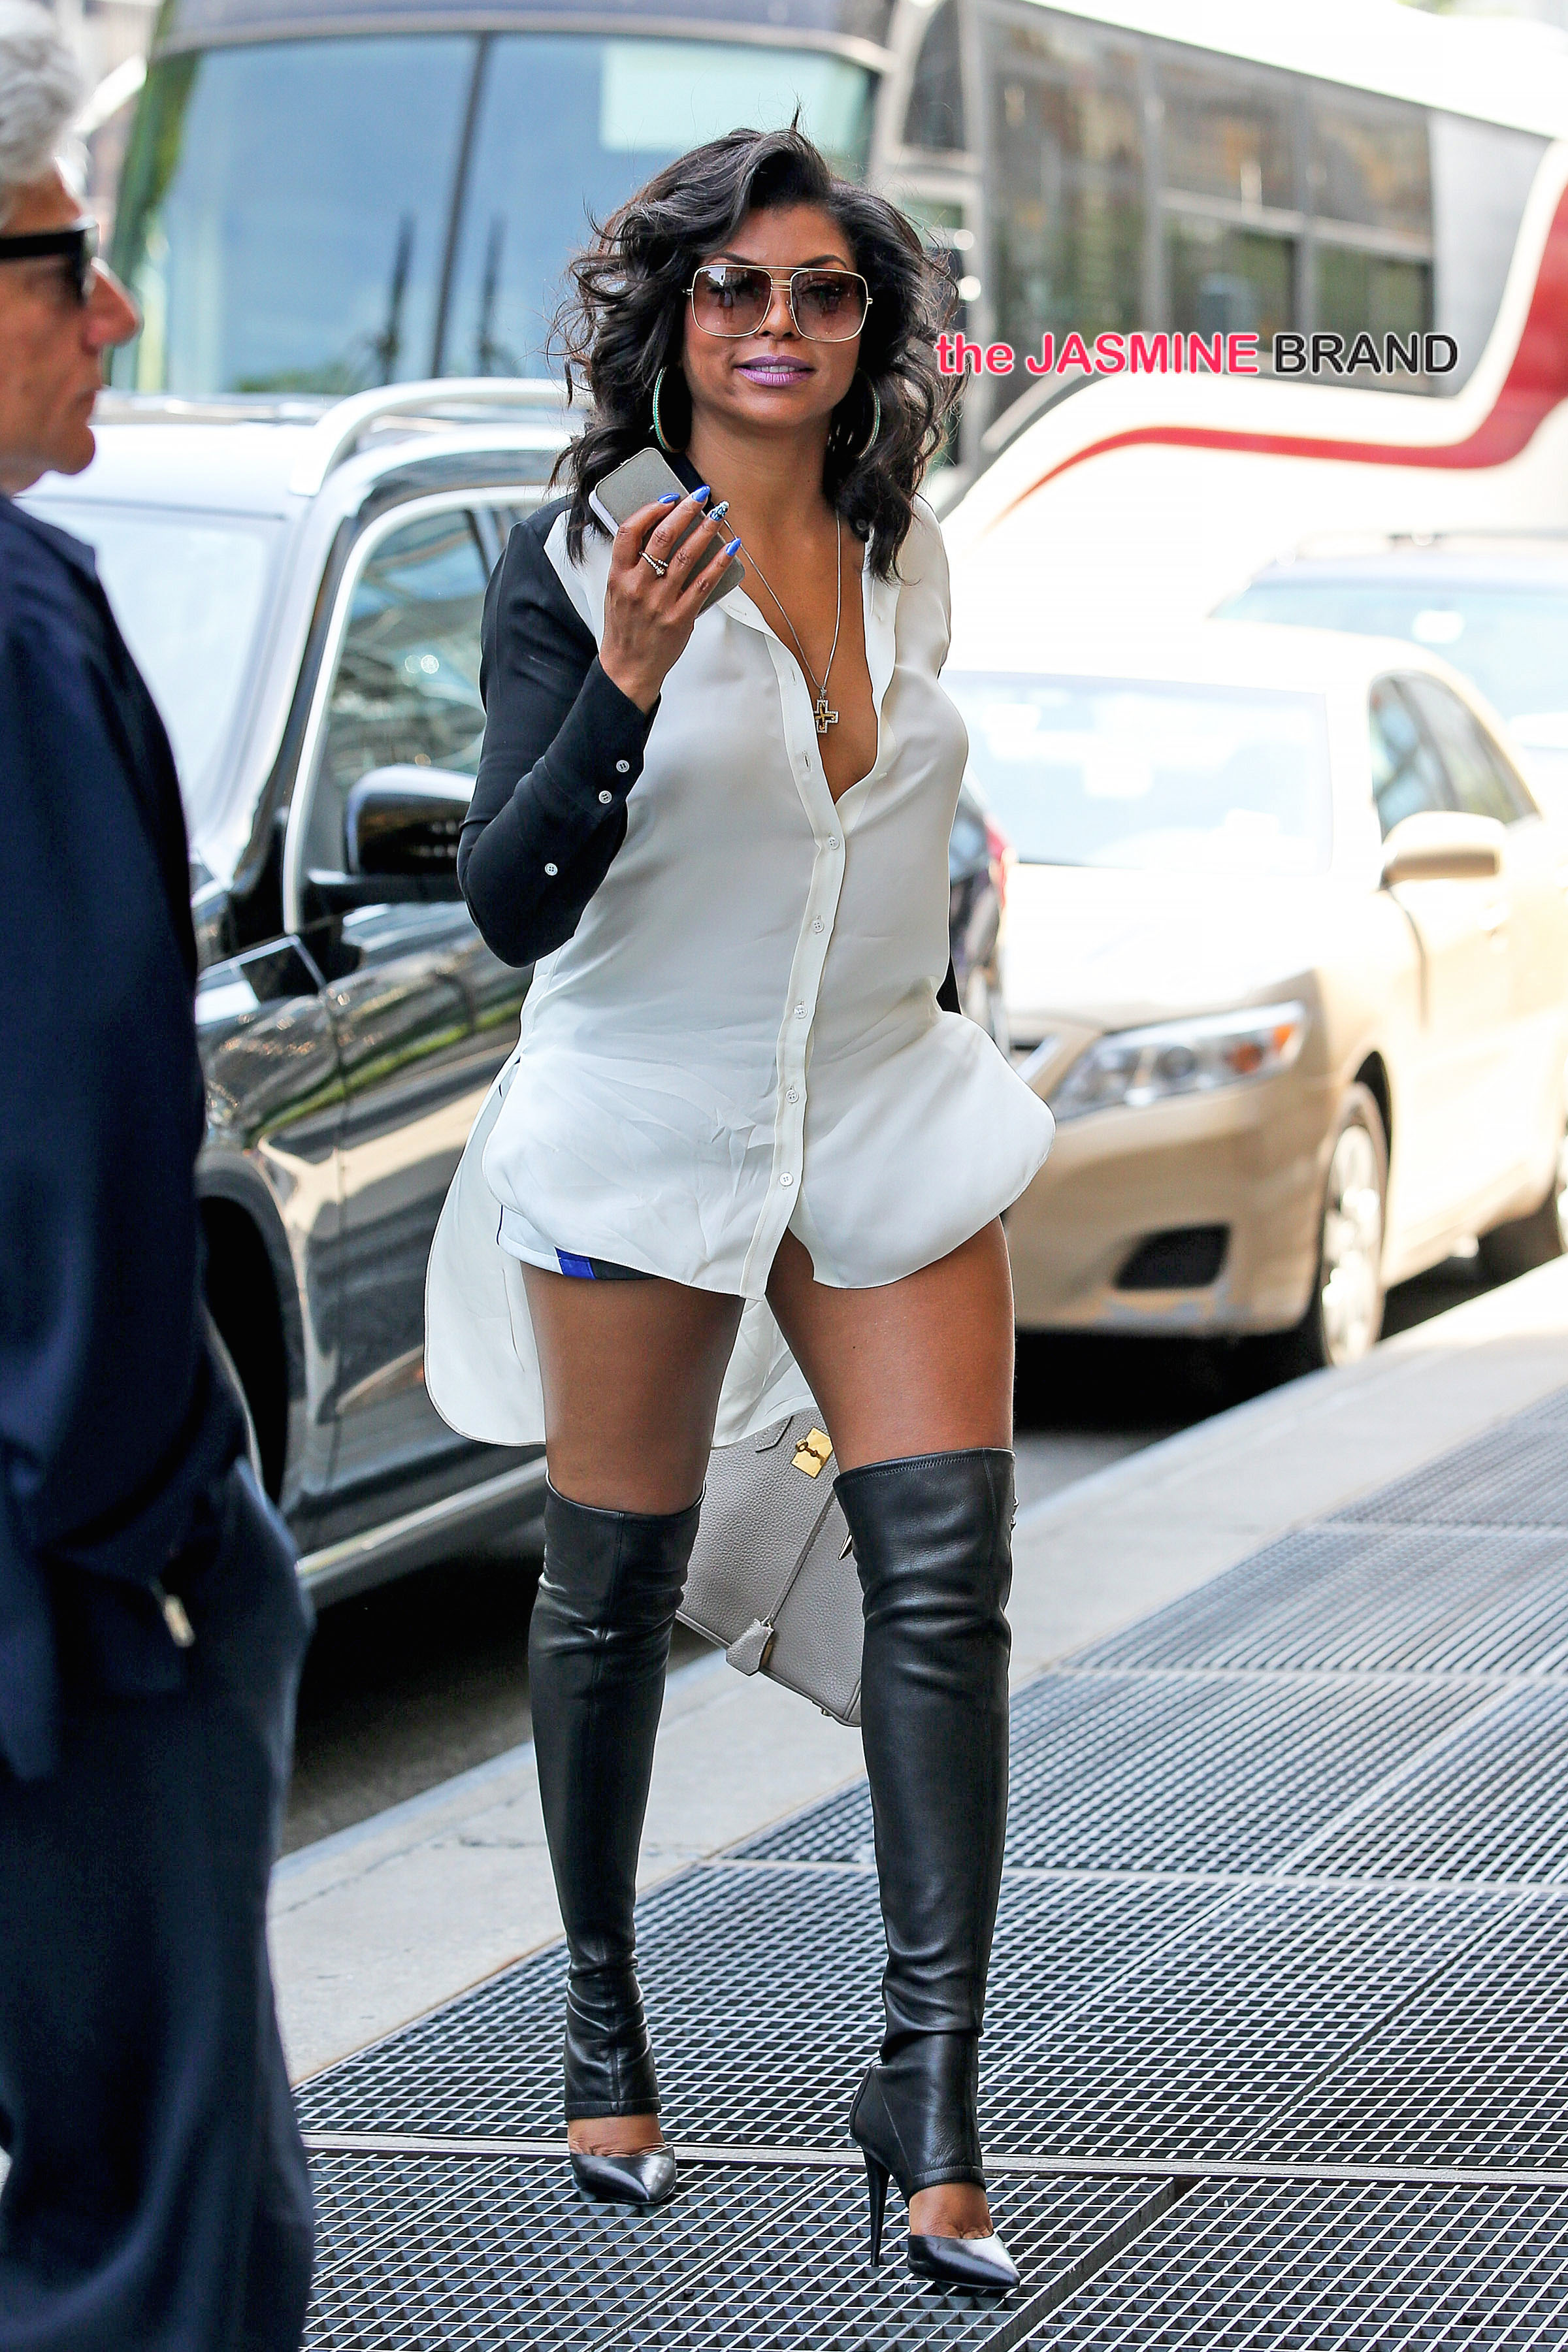 Taraji P. Henson spotted been surprise by her fans while waiting for her outside her hotel in New York City